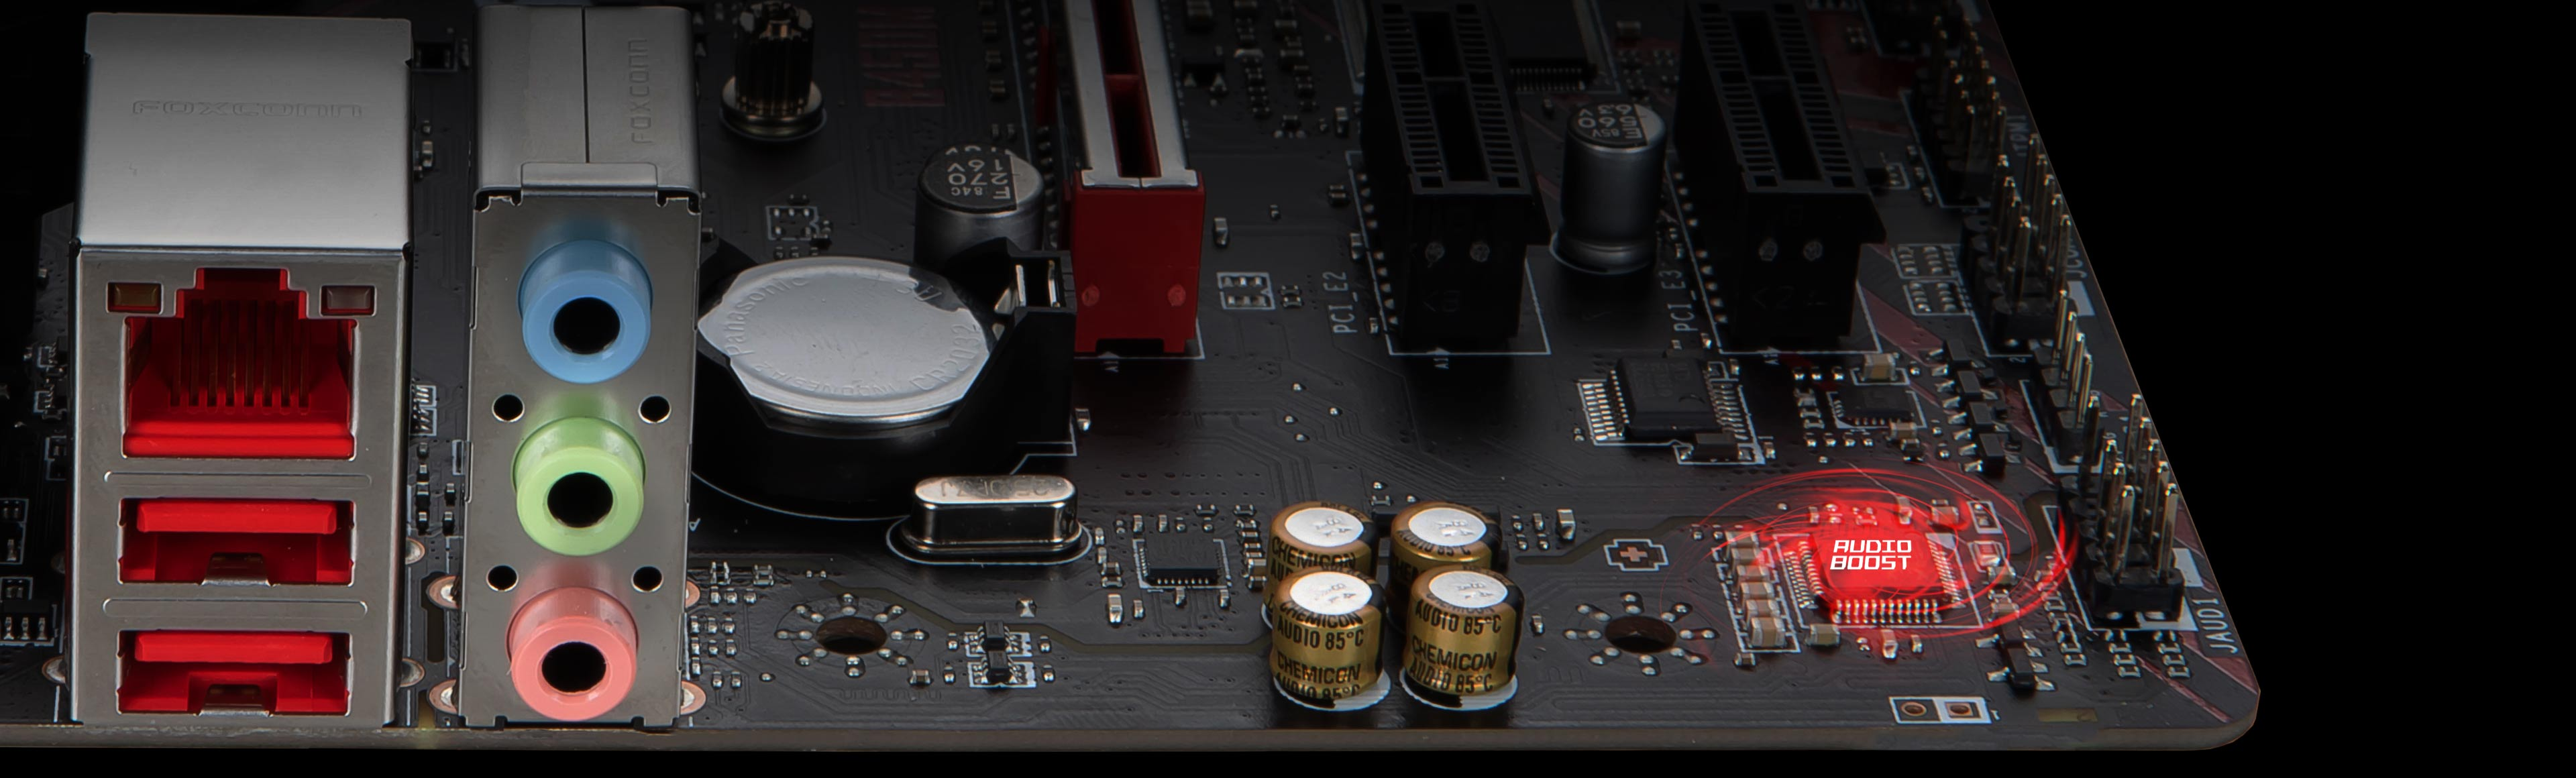 B450M GAMING PLUS | Motherboard - The world leader in